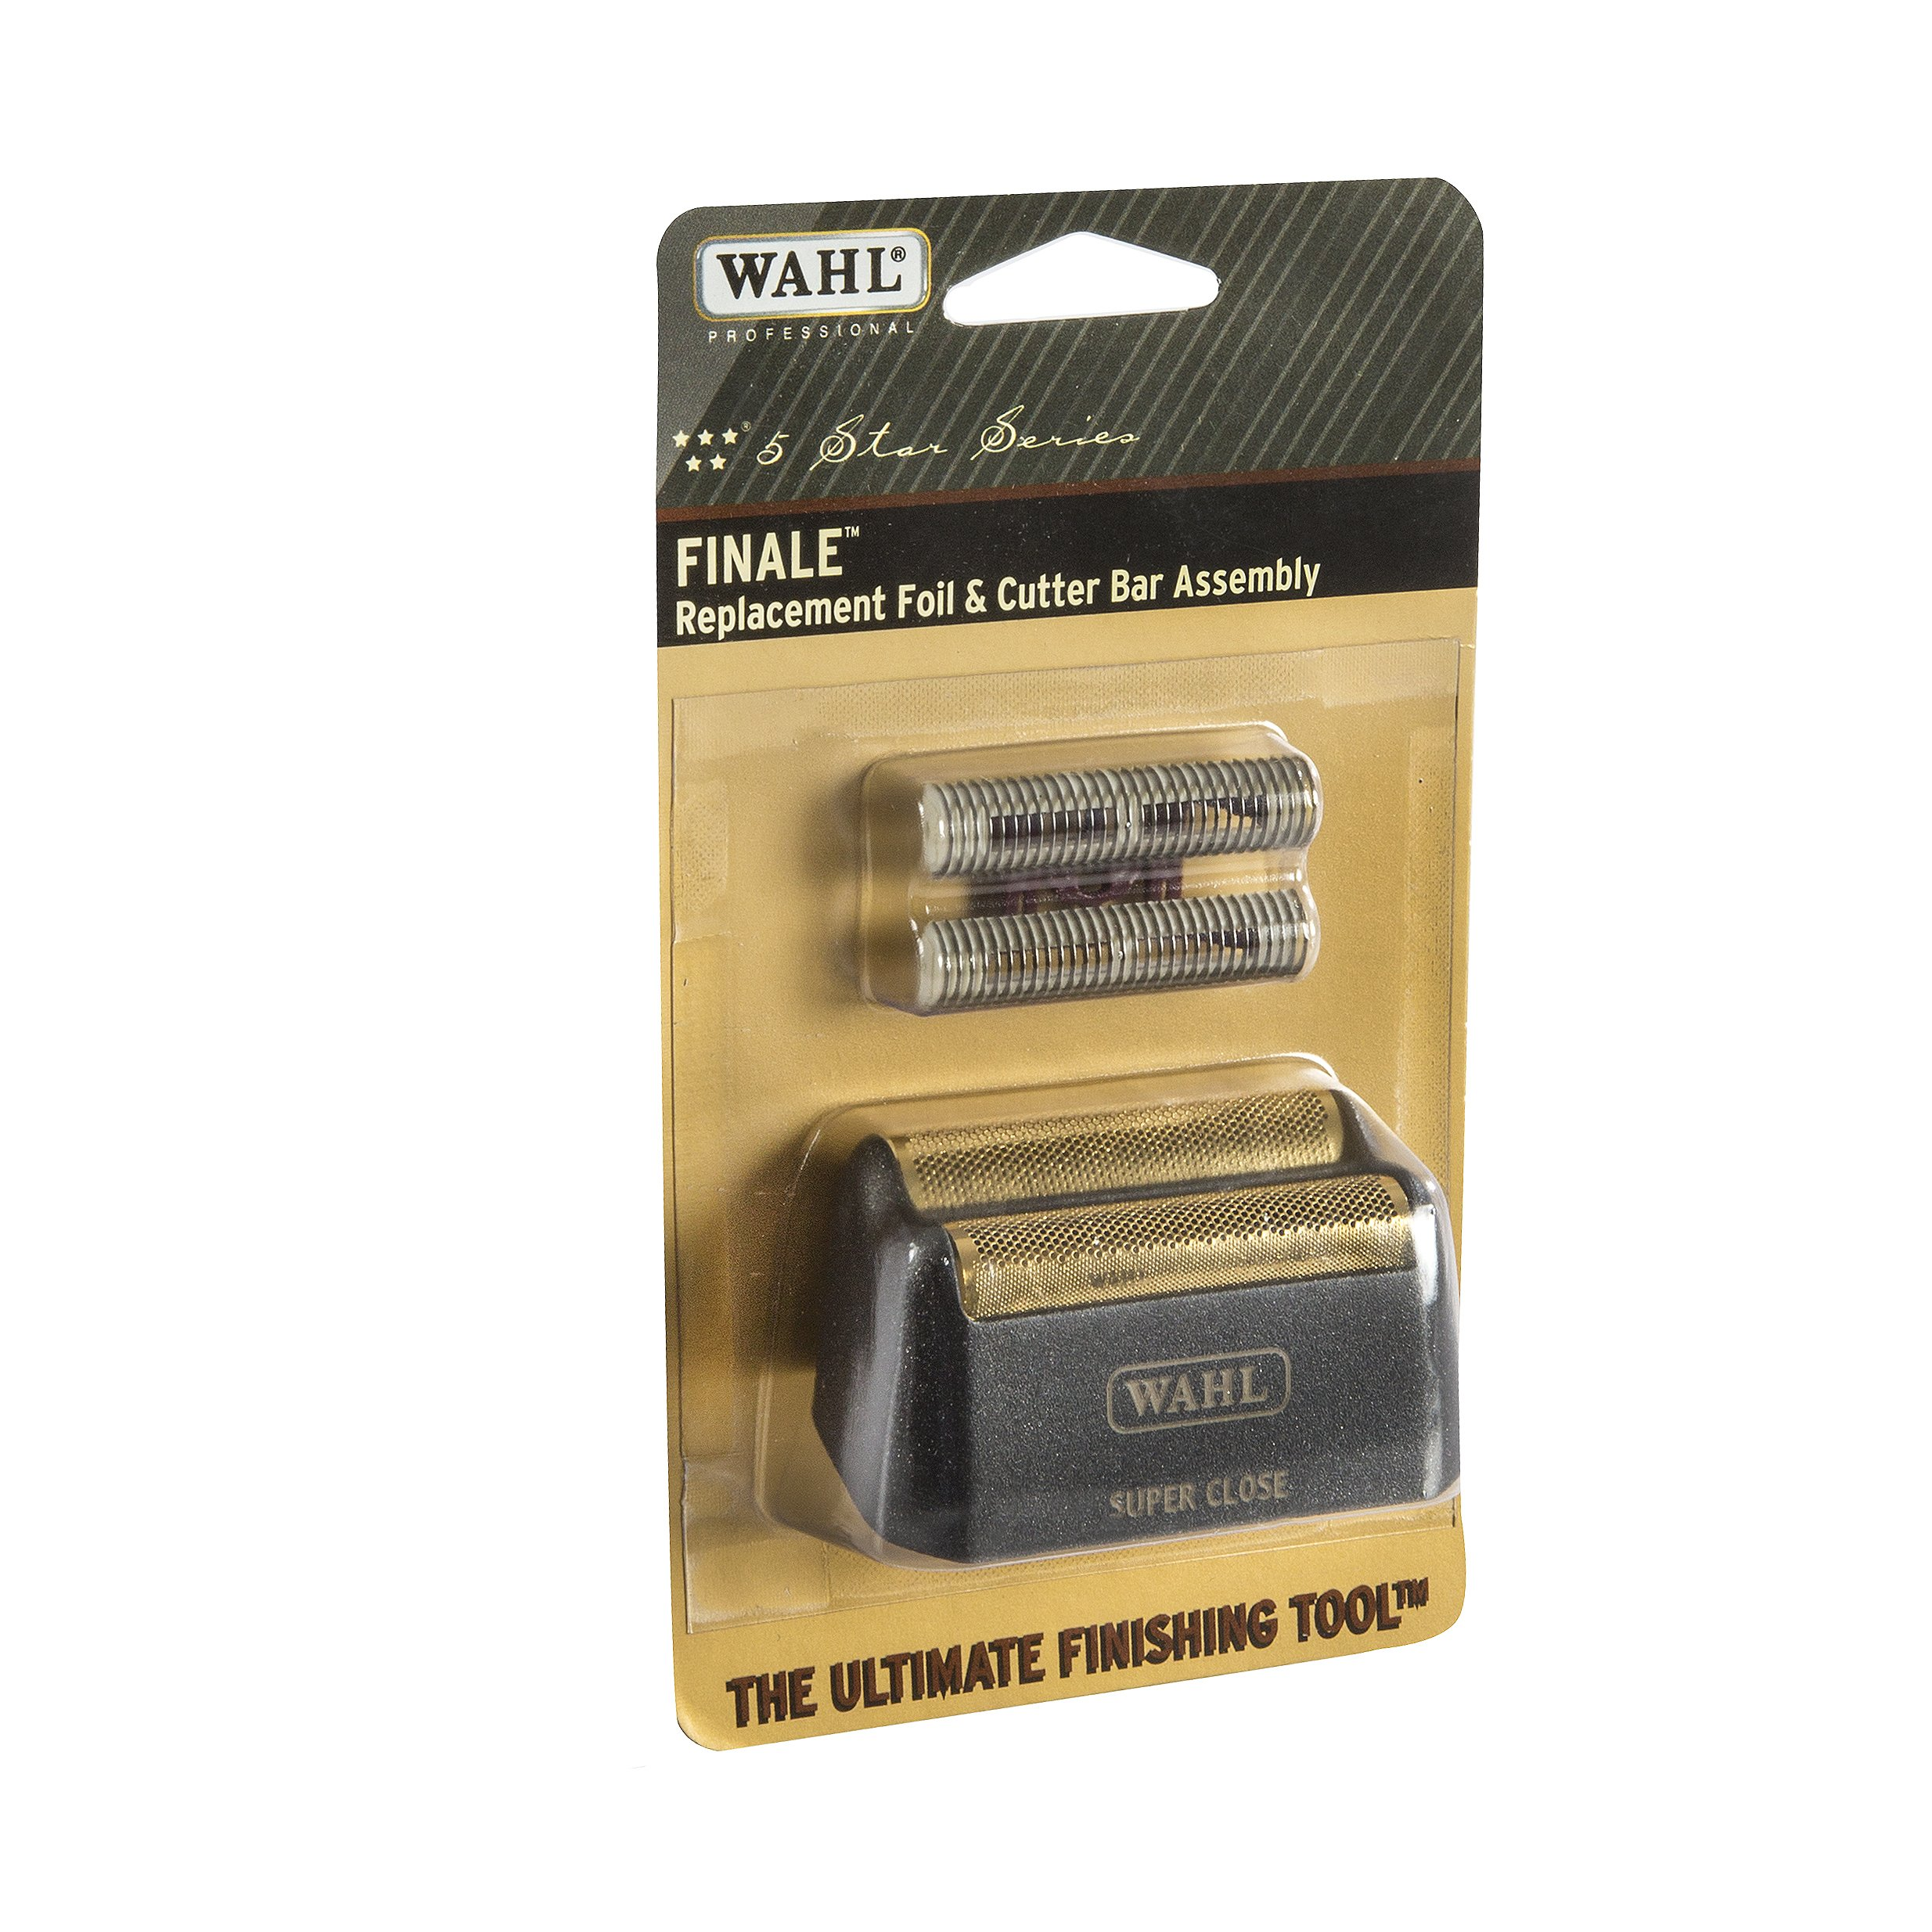 Wahl Professional 5-Star Series Finale Replacement Foil and Cutter Bar Assembly #7043 – Hypo-Allergenic For Super Close Bump Free Shaving – Black